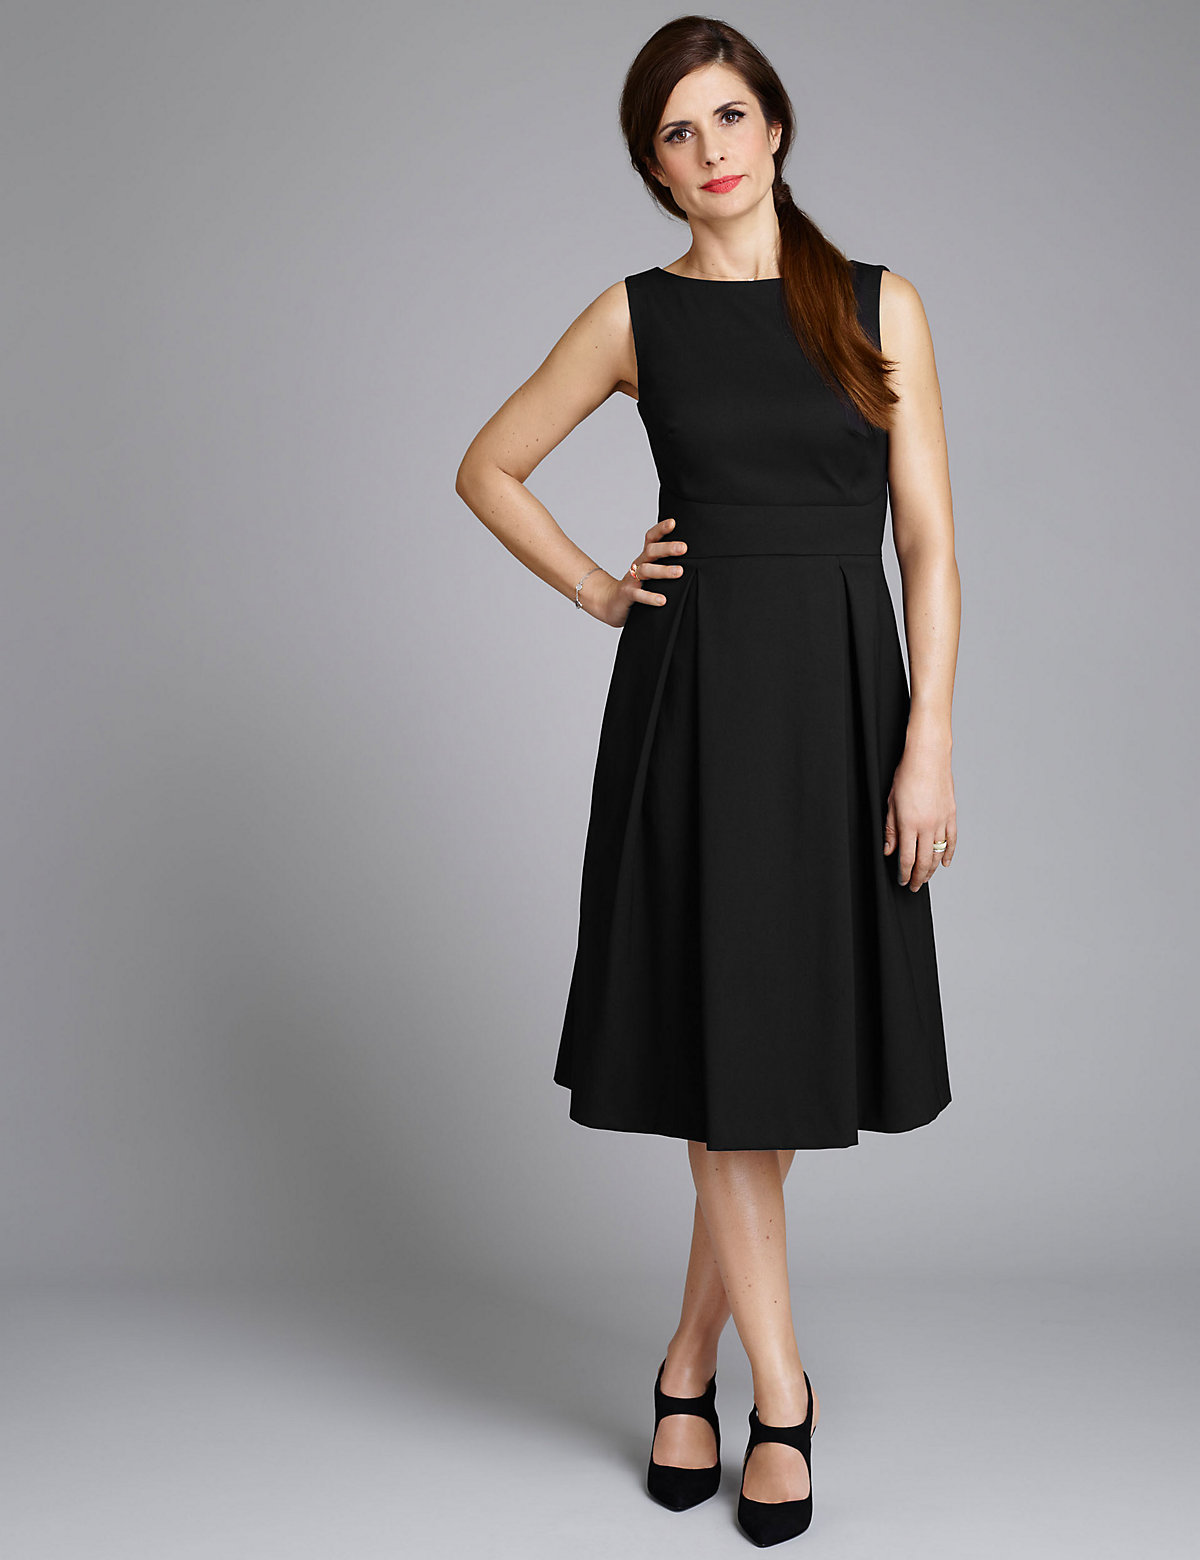 Livia Firth and MS Est 1884 Cotton Blend Fit Flare Dress Marks and Spencer P60080496